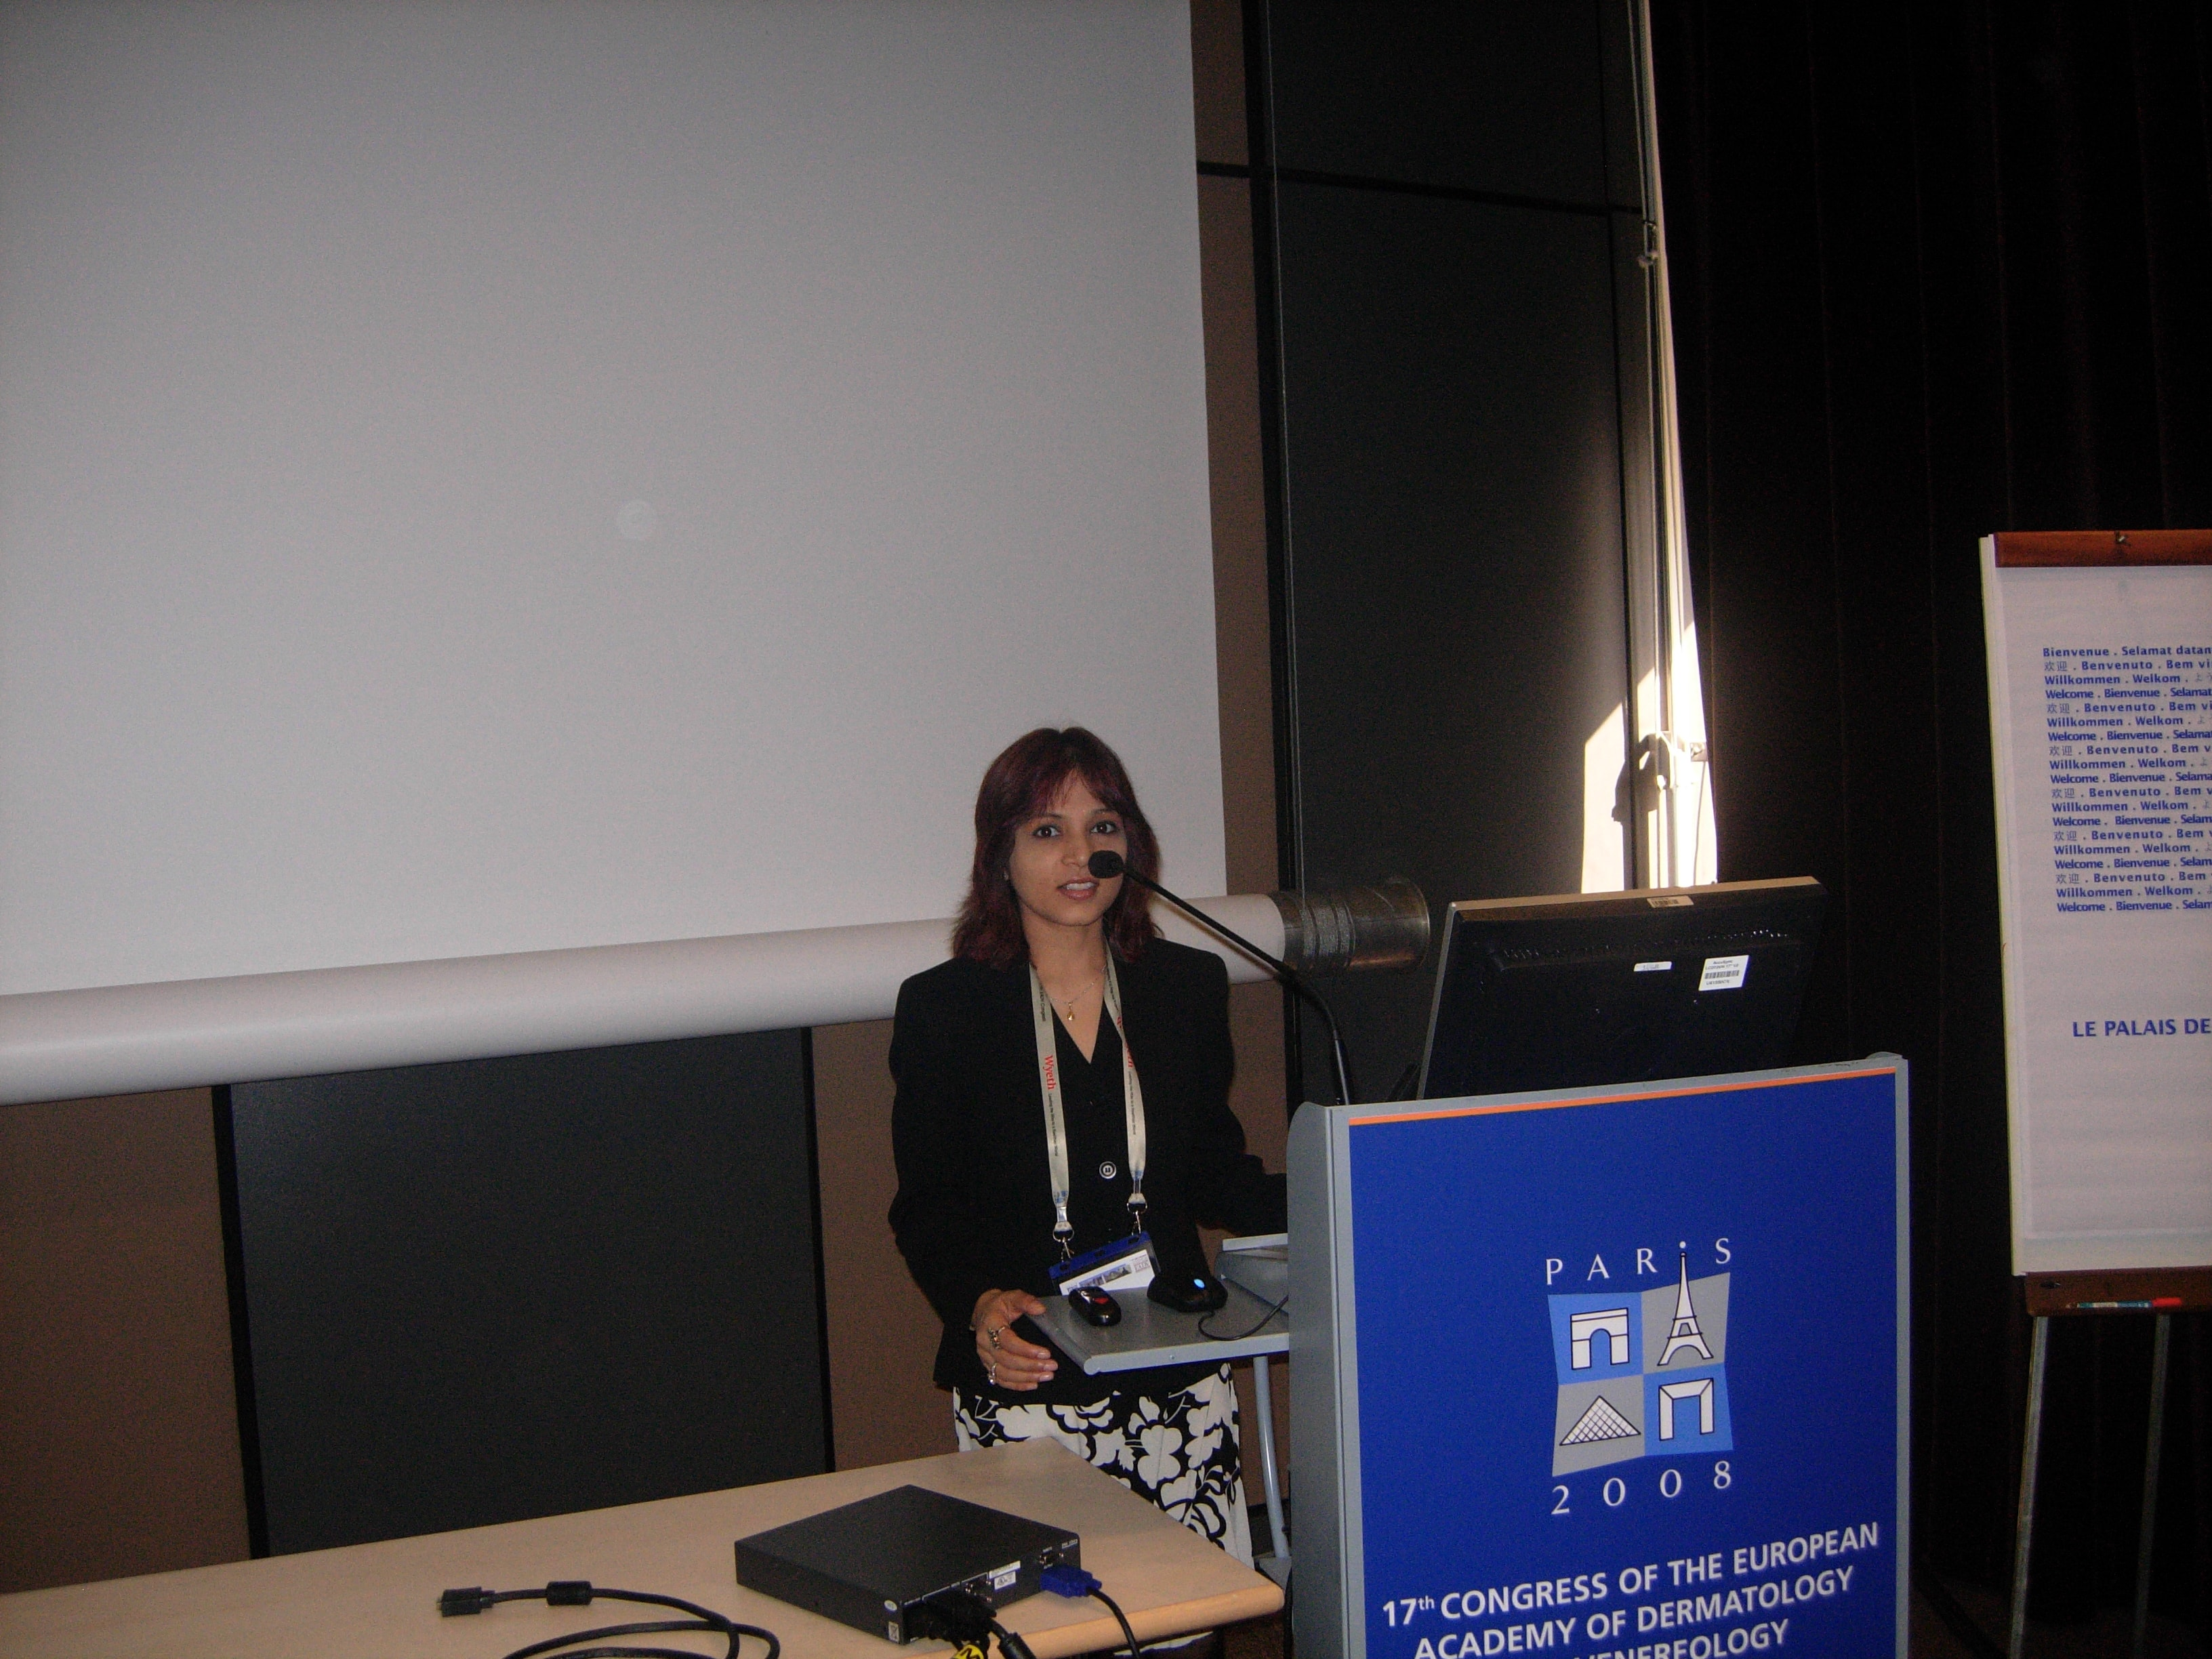 2008- Paris - 17th Congress of the European Academy of Dermatology and Venereology